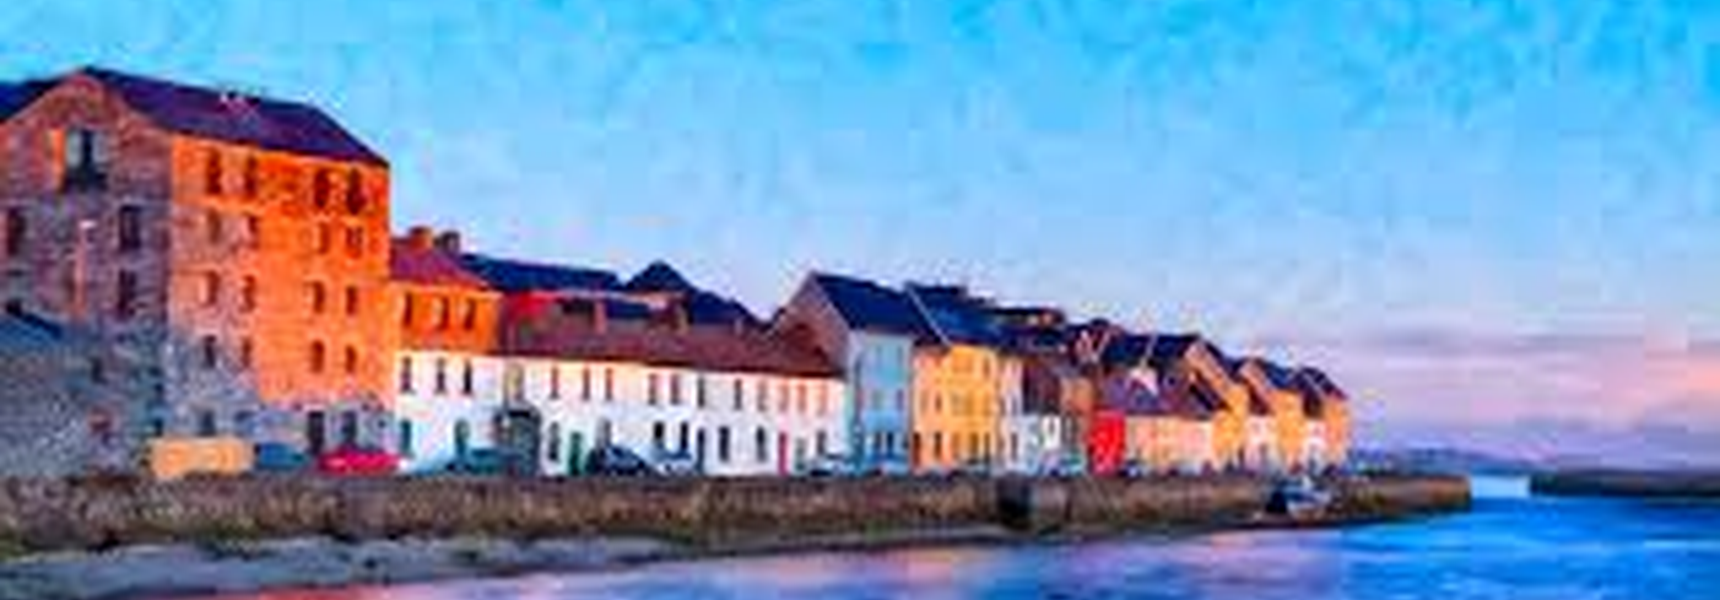 Discover Galway Walking Tour